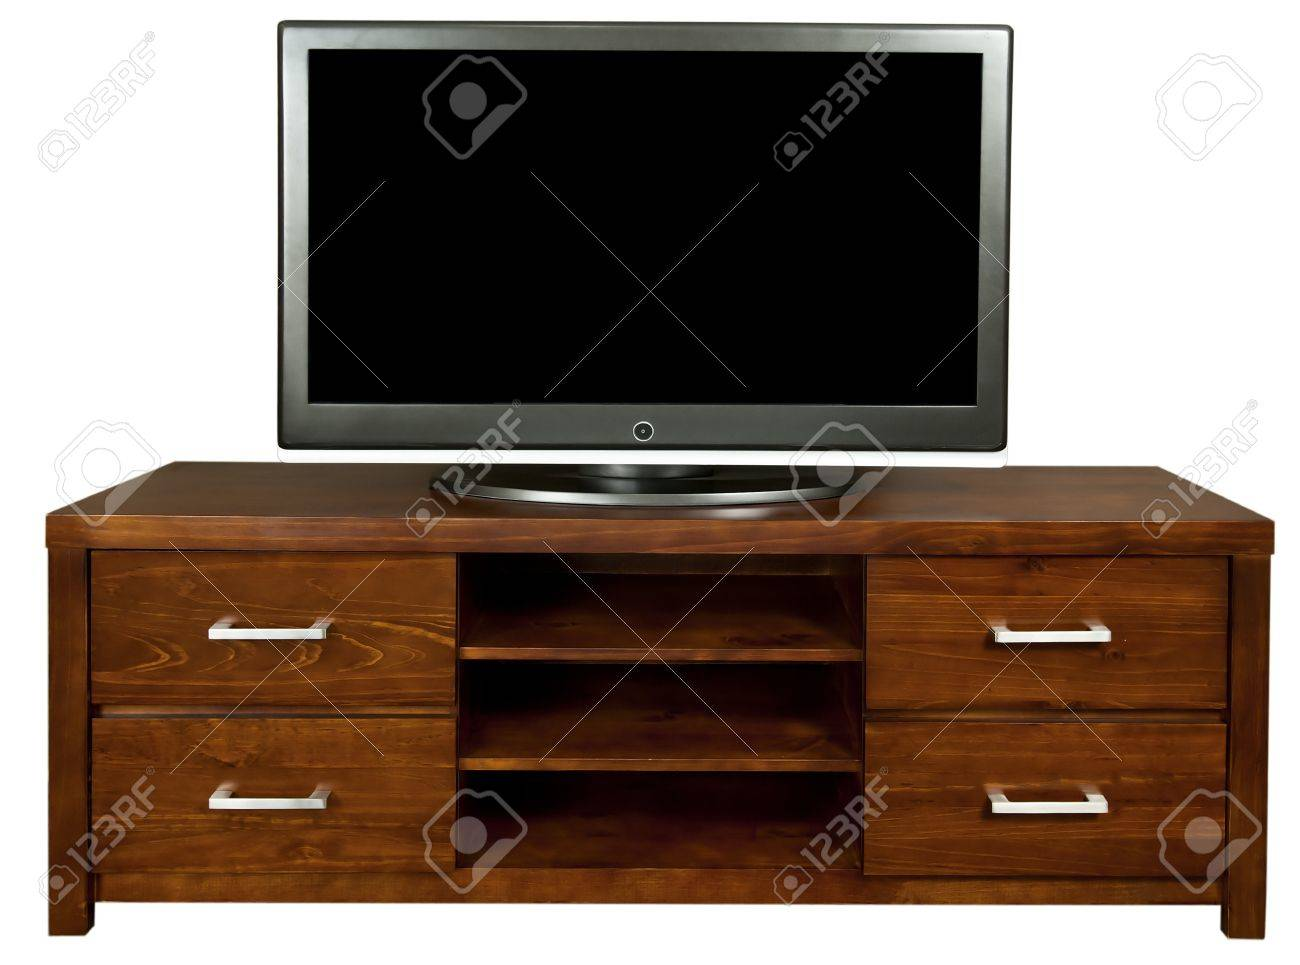 Large Tv Cabinets A Classic Brown Wooden Tv Cabinet With A Large Lcd Tv On It Stock